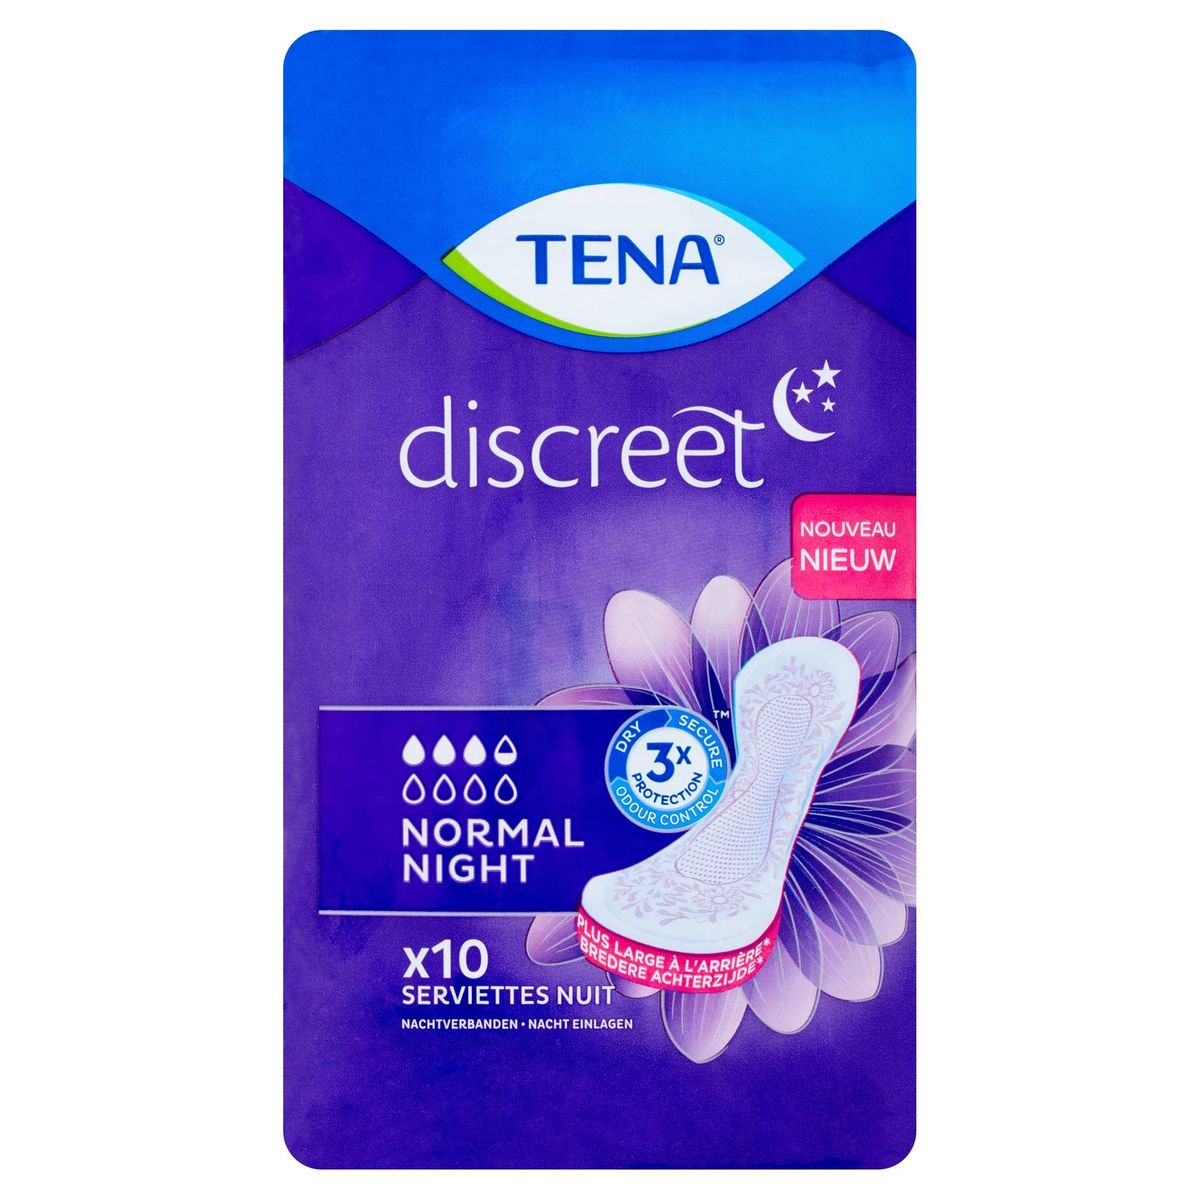 Tena Discreet Normal Night 10 Serviettes Nuit